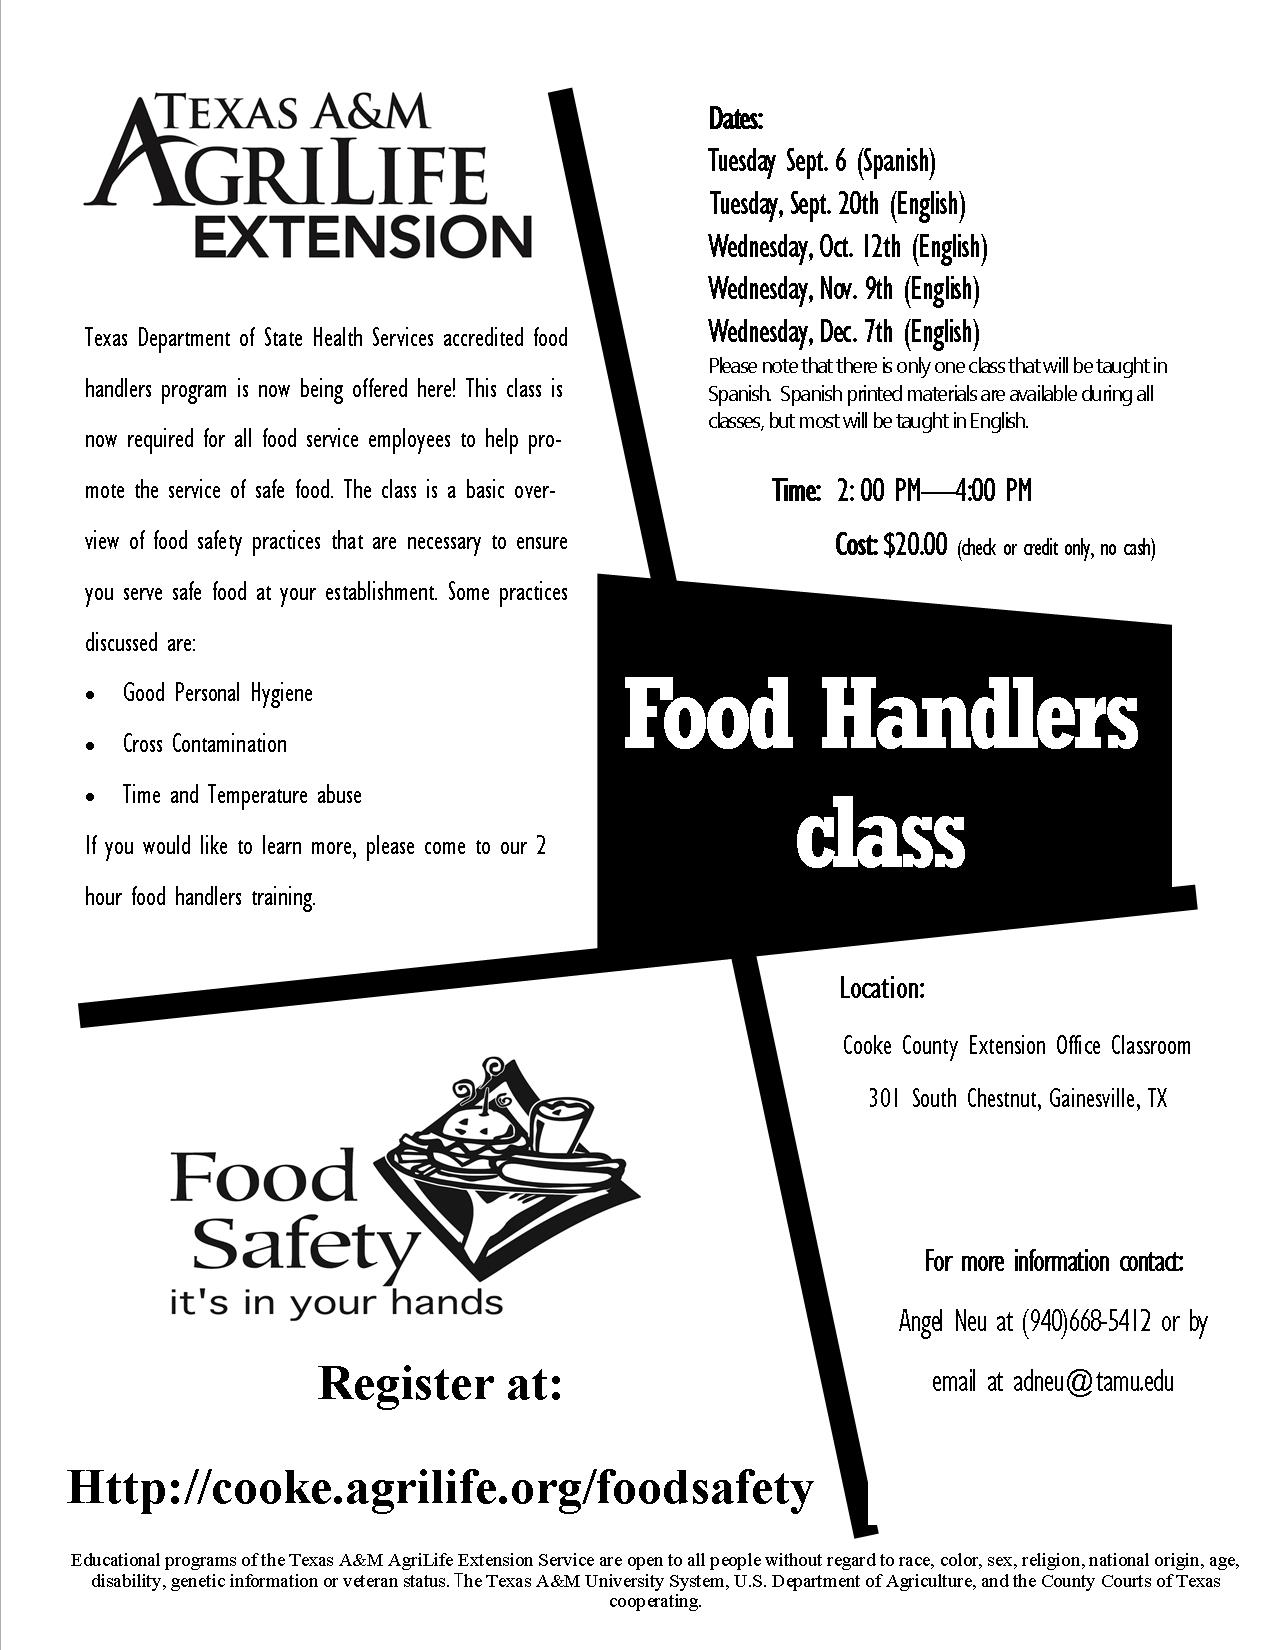 Food Handlers Class (Spanish Only)